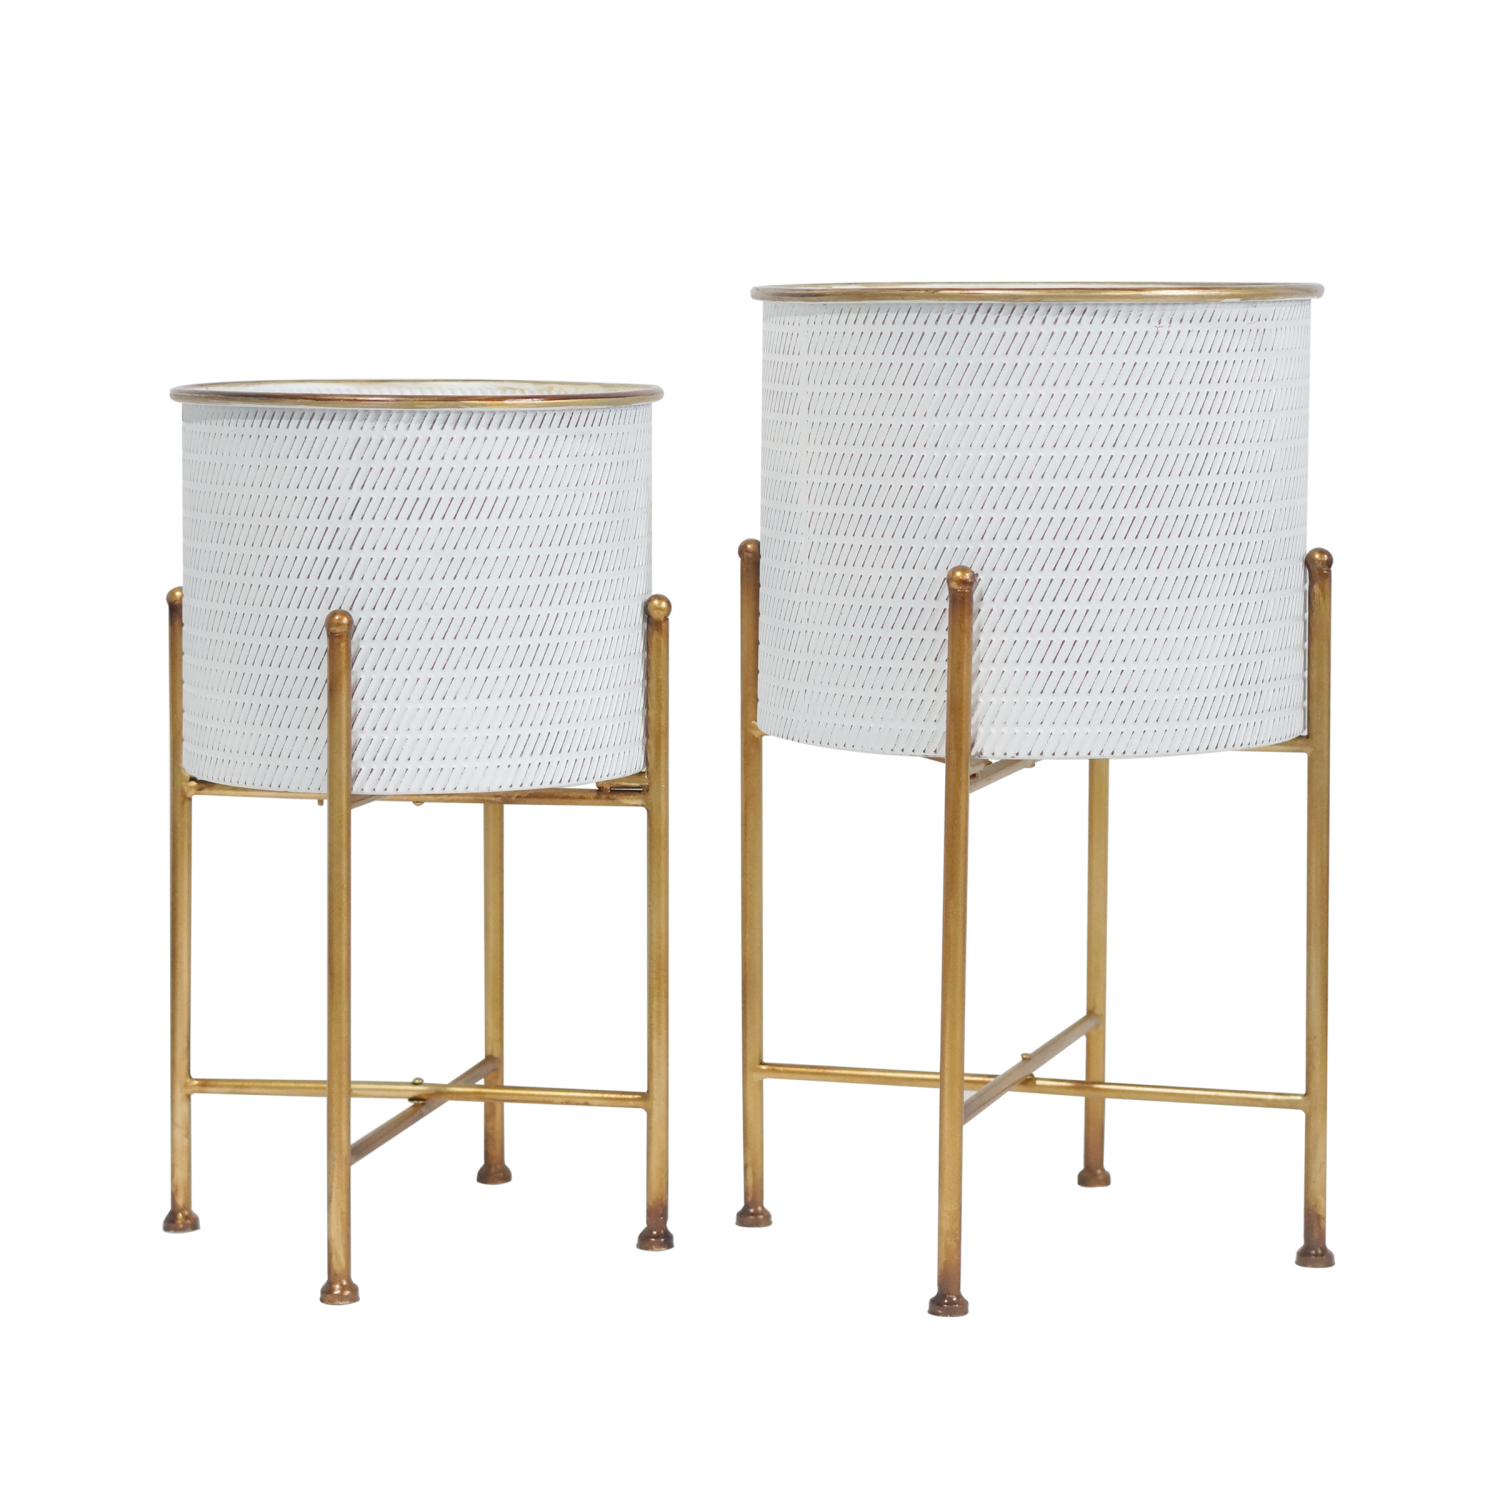 Embossed Metal Planters On Stand Set of 2